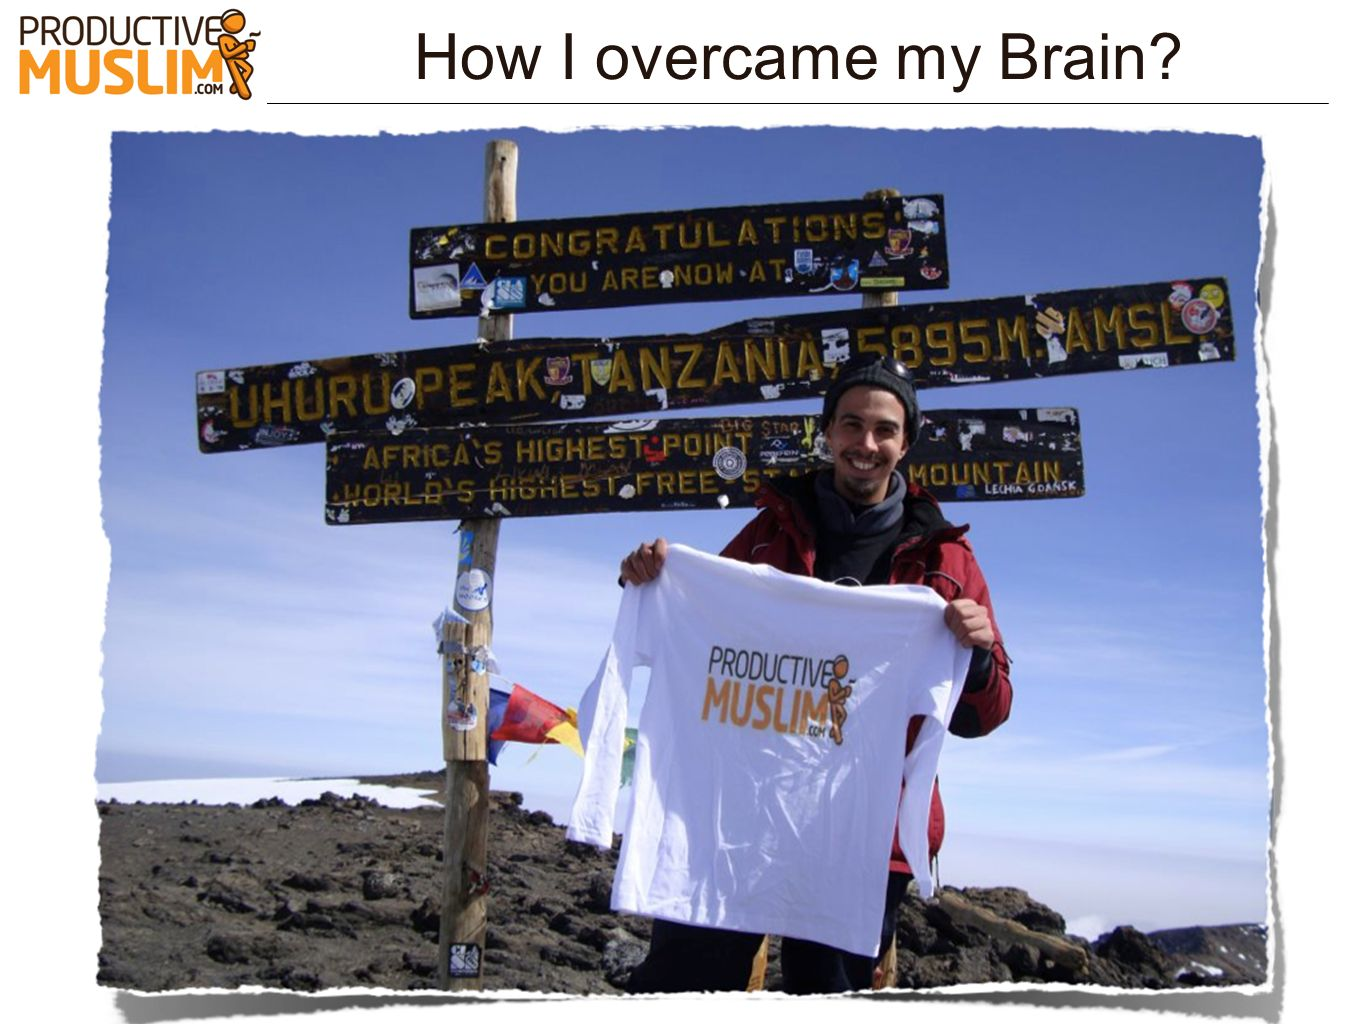 How I overcame my Brain